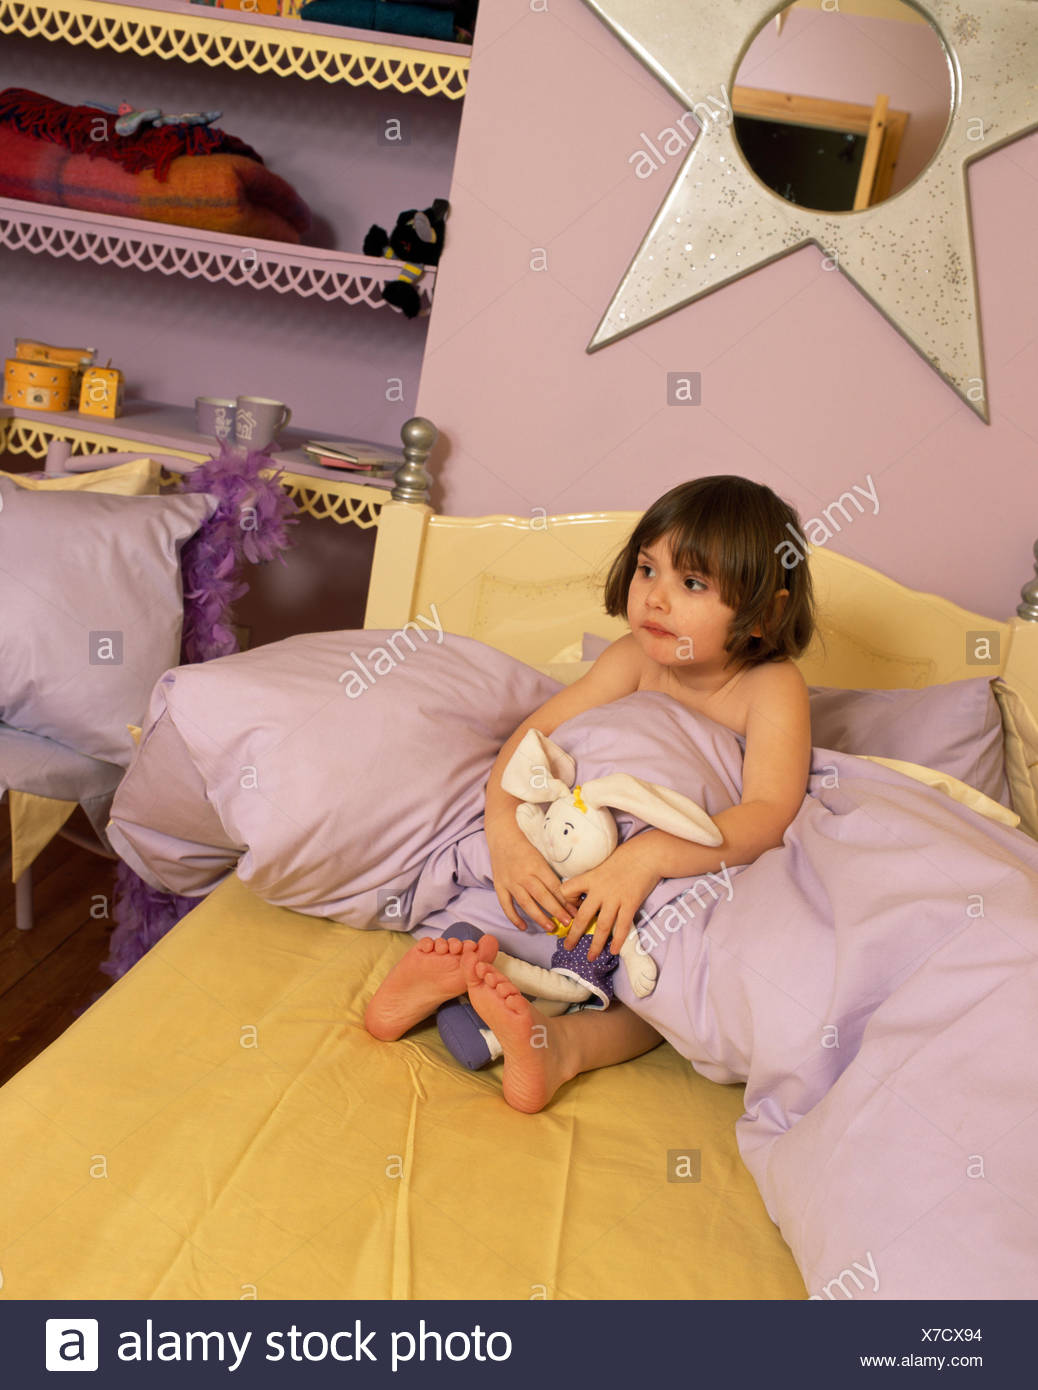 A small girl wrapped in a lilac duvet and sitting on the bed in a star themed bedroom - Stock Image